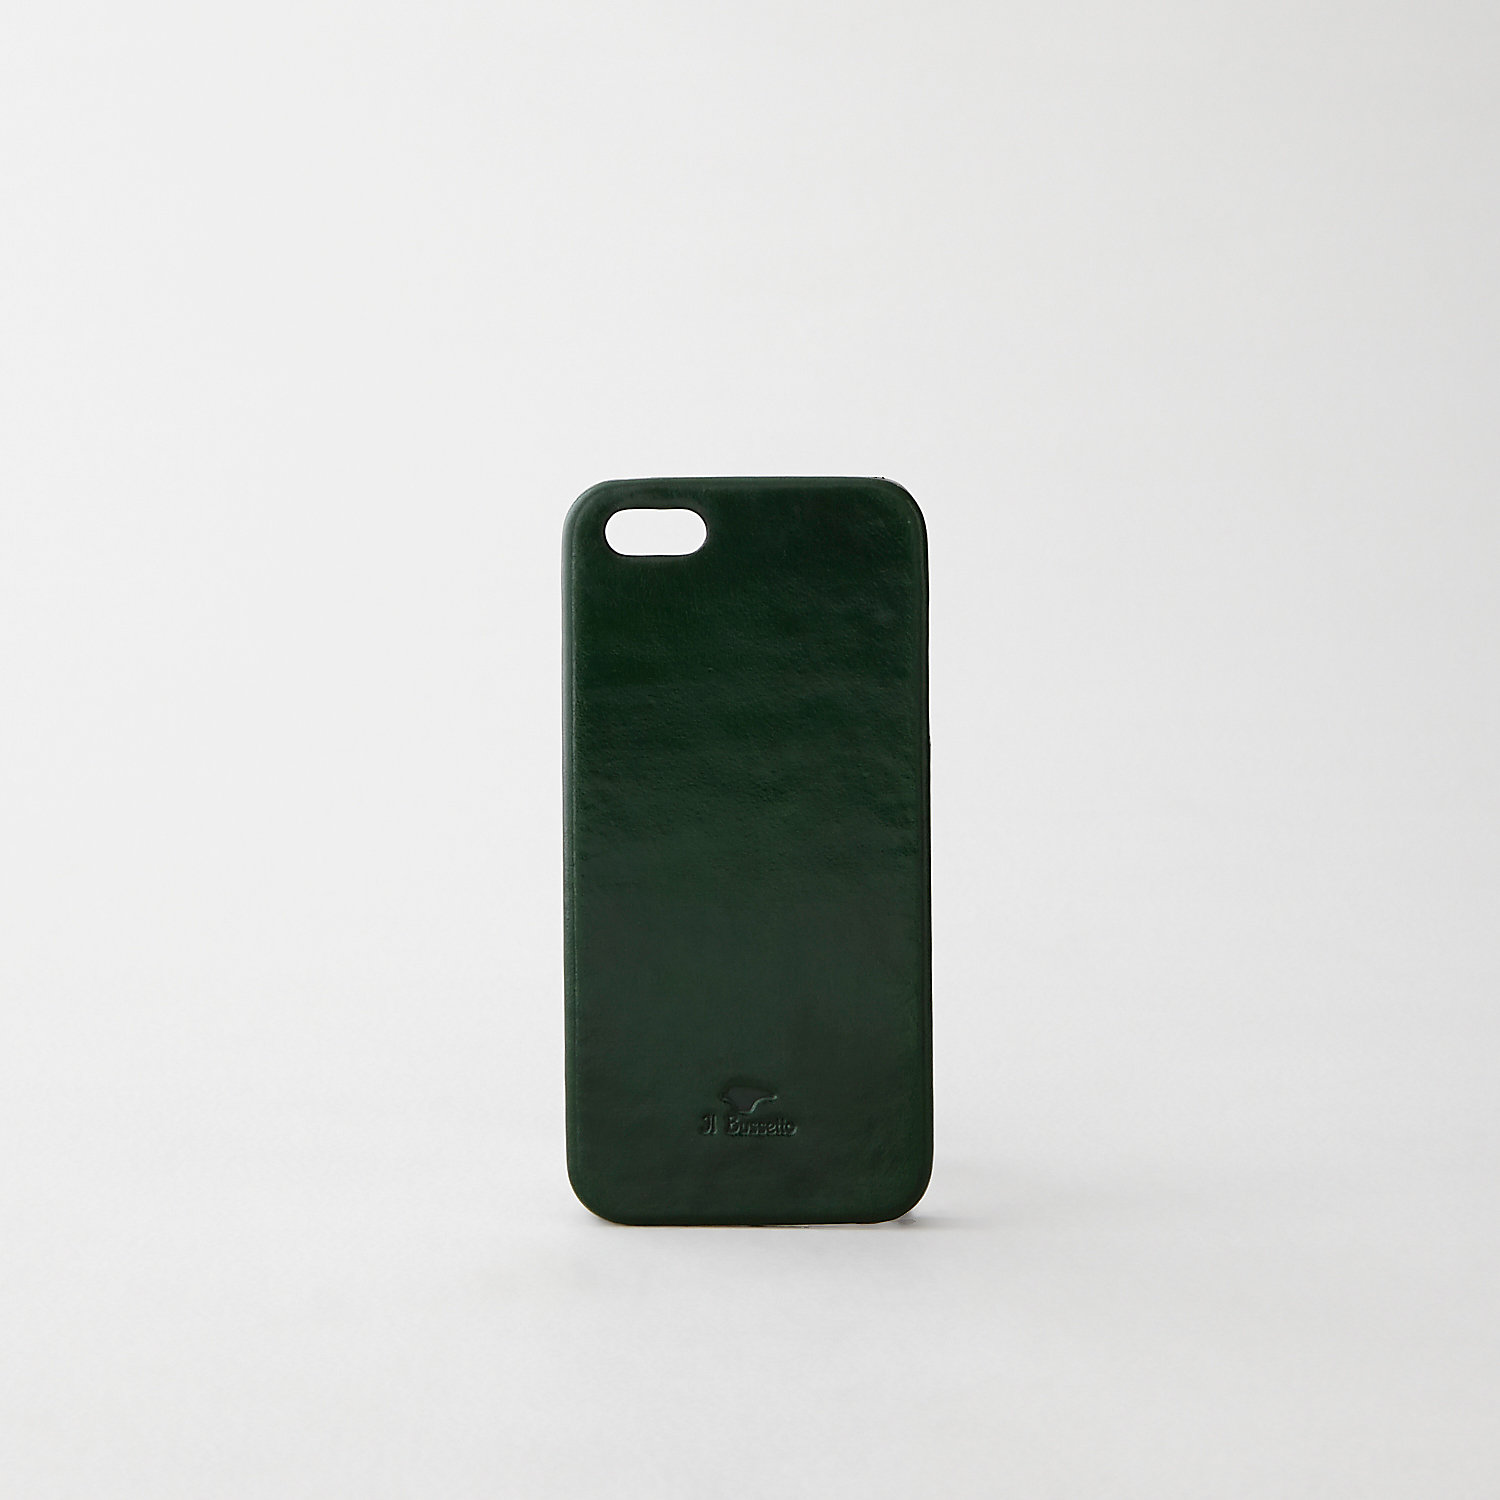 IPHONE 5 LEATHER COVER